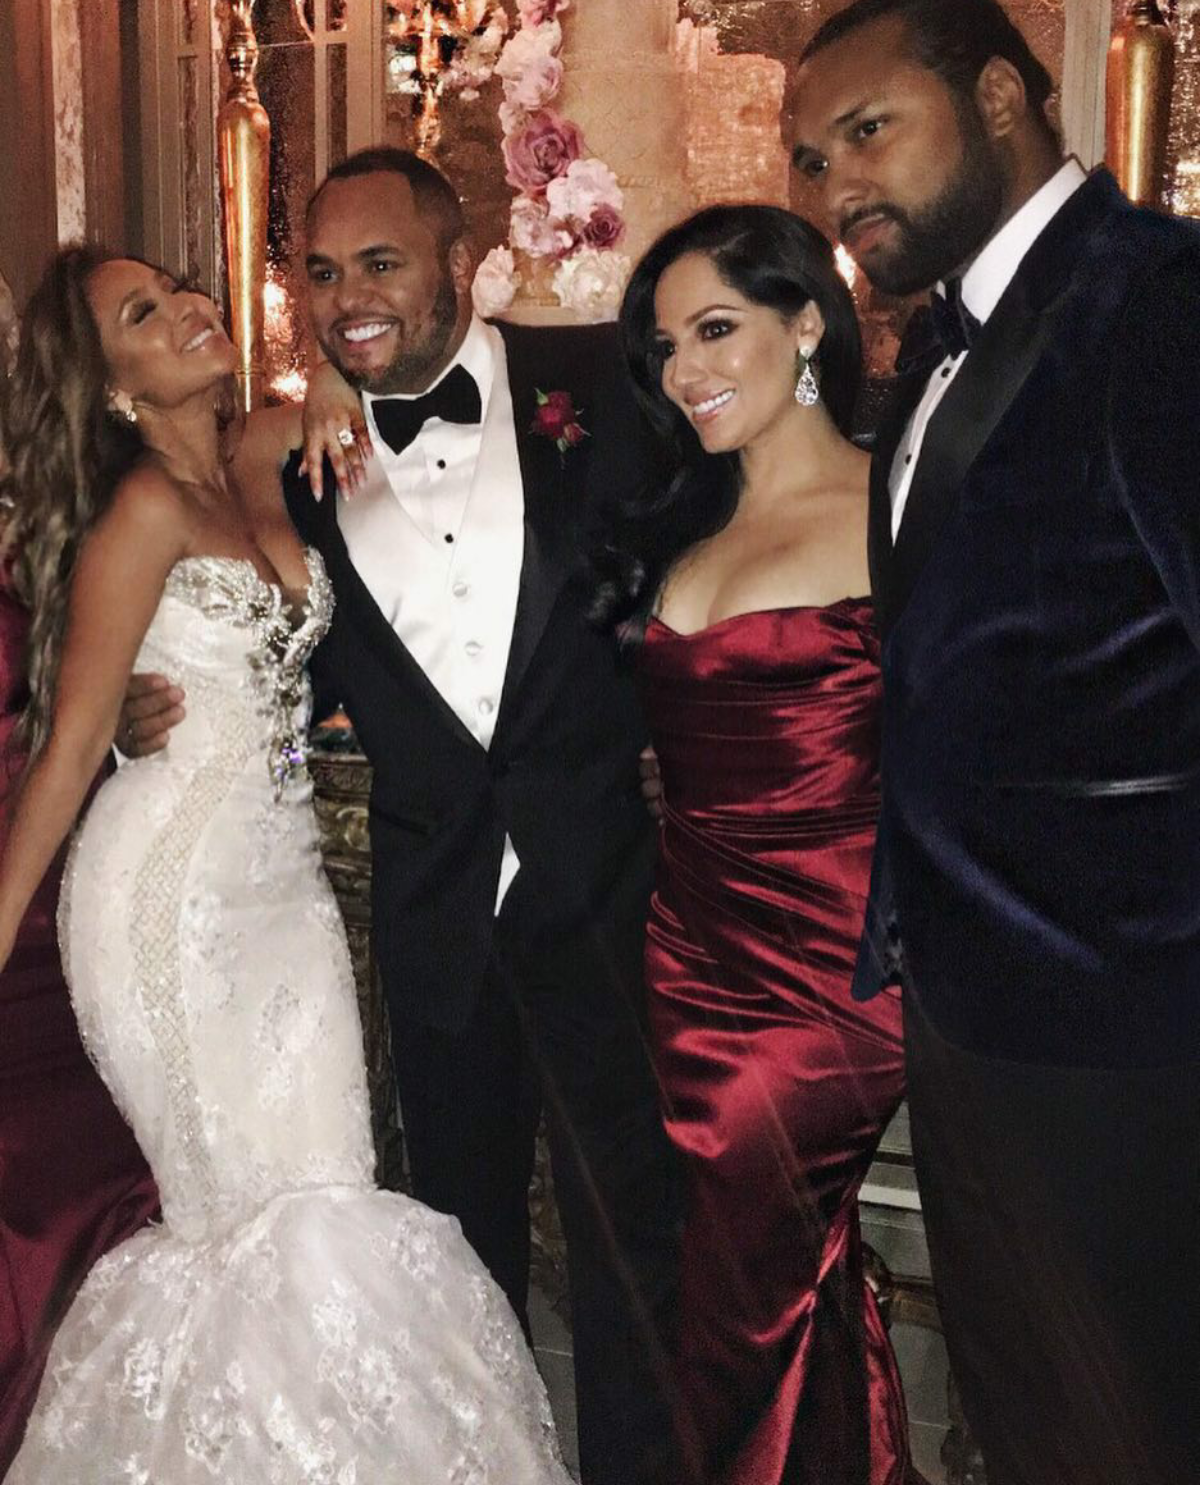 Adrienne Bailon Amp Israel Houghton Tie The Knot In A